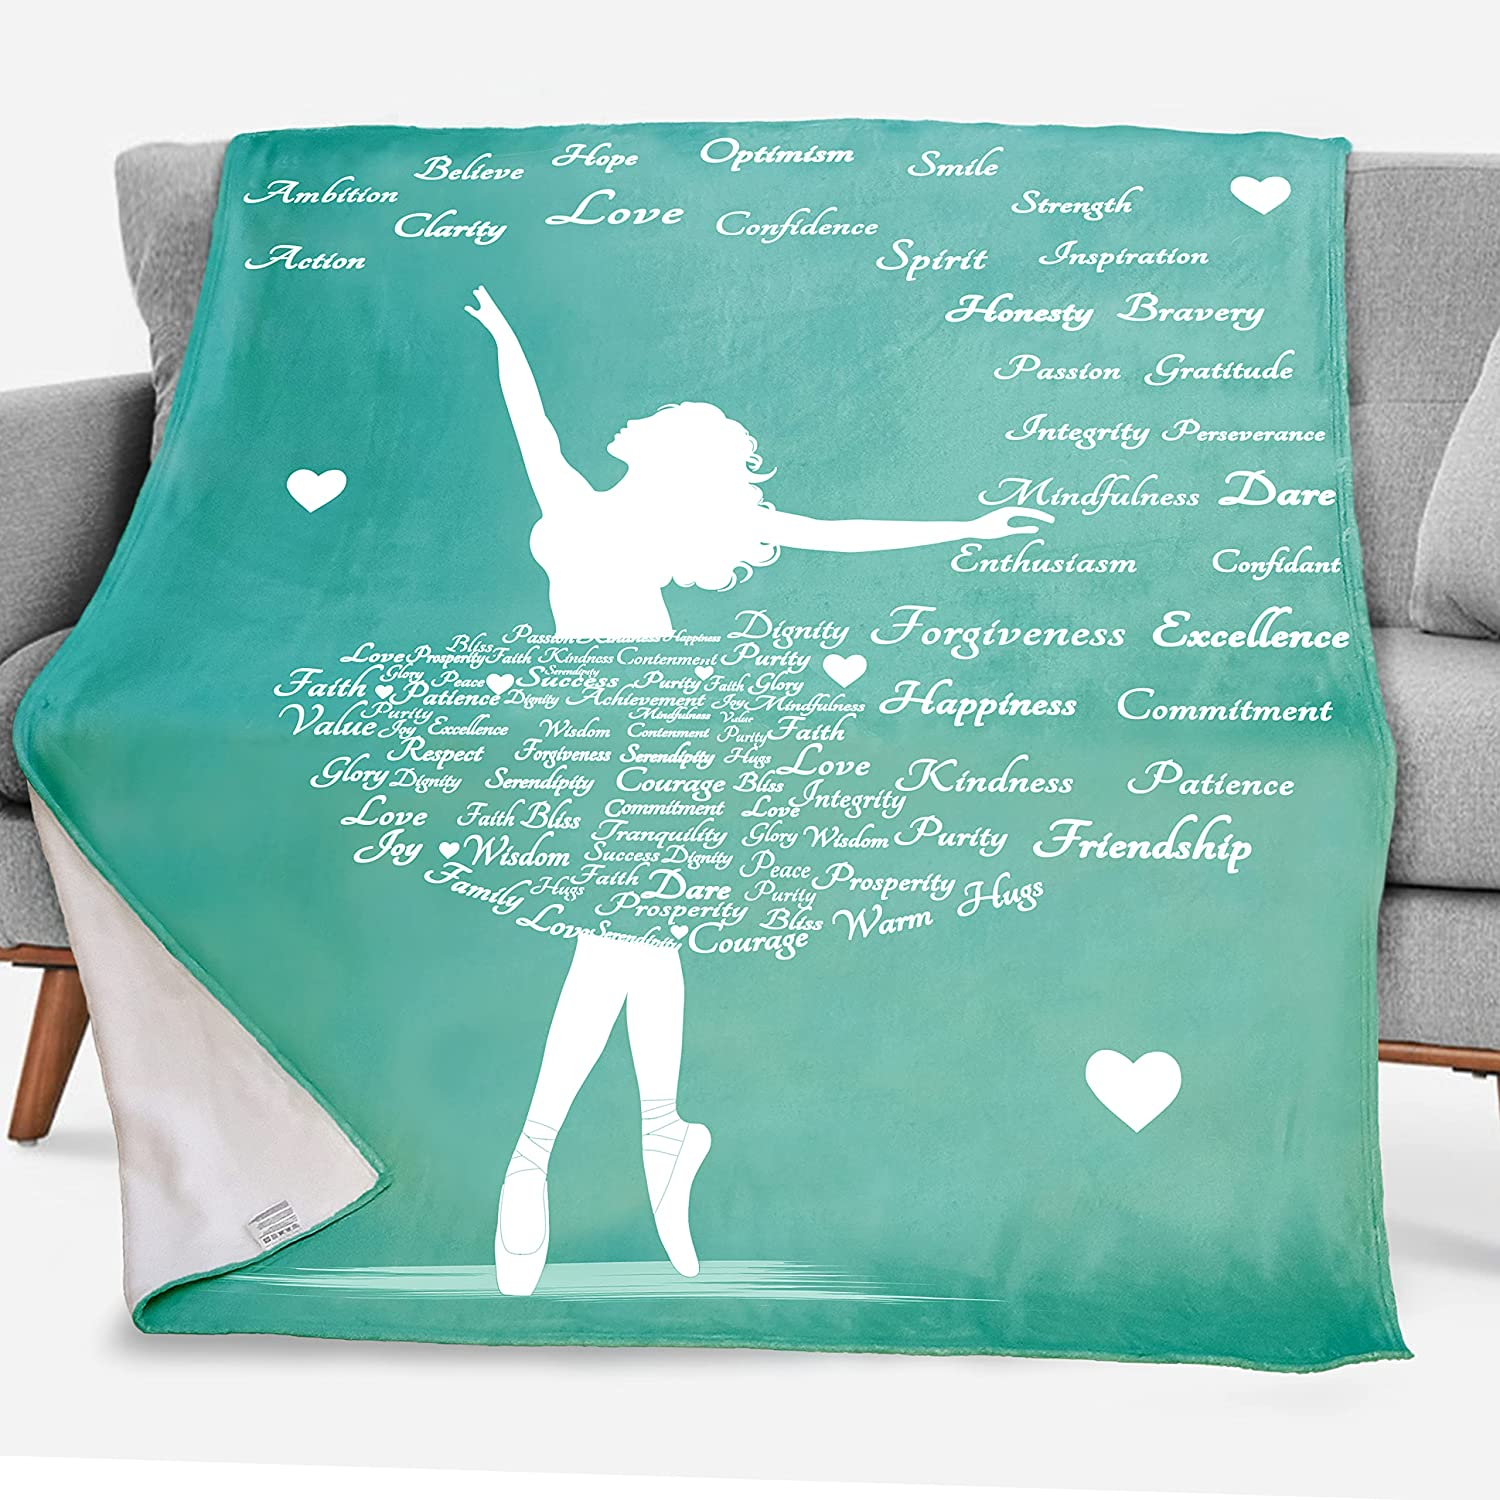 Dorr Purchase Gift Clearance SALE! Limited time! Inspirational Healing Blanket Throw - Well Caring Get